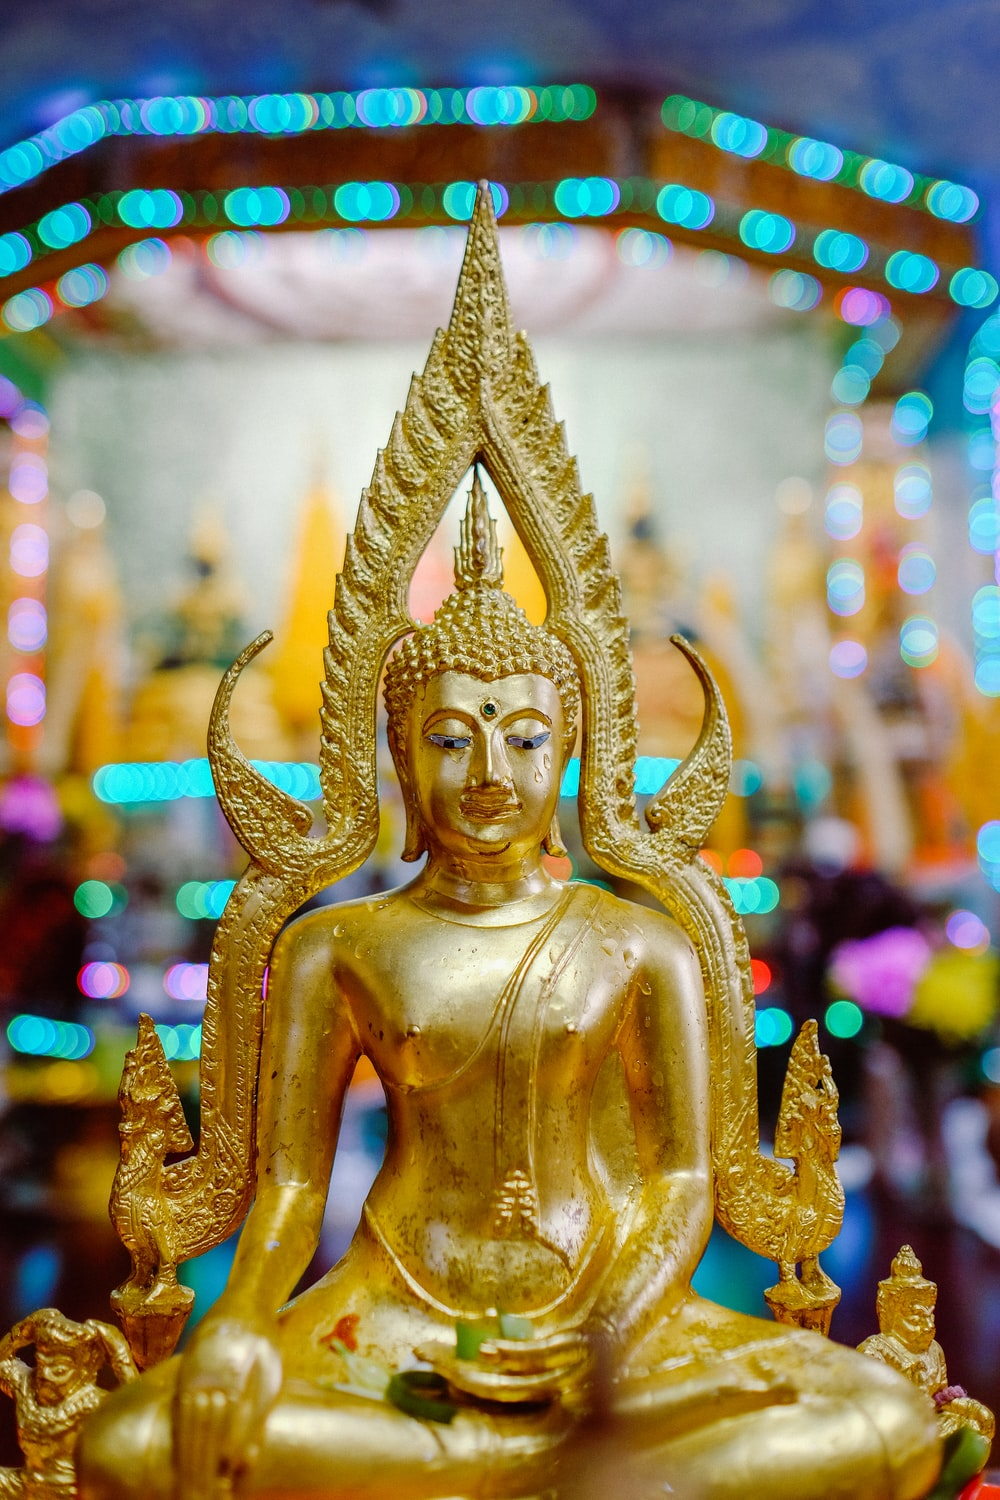 gold buddha figurine in tilt shift lens